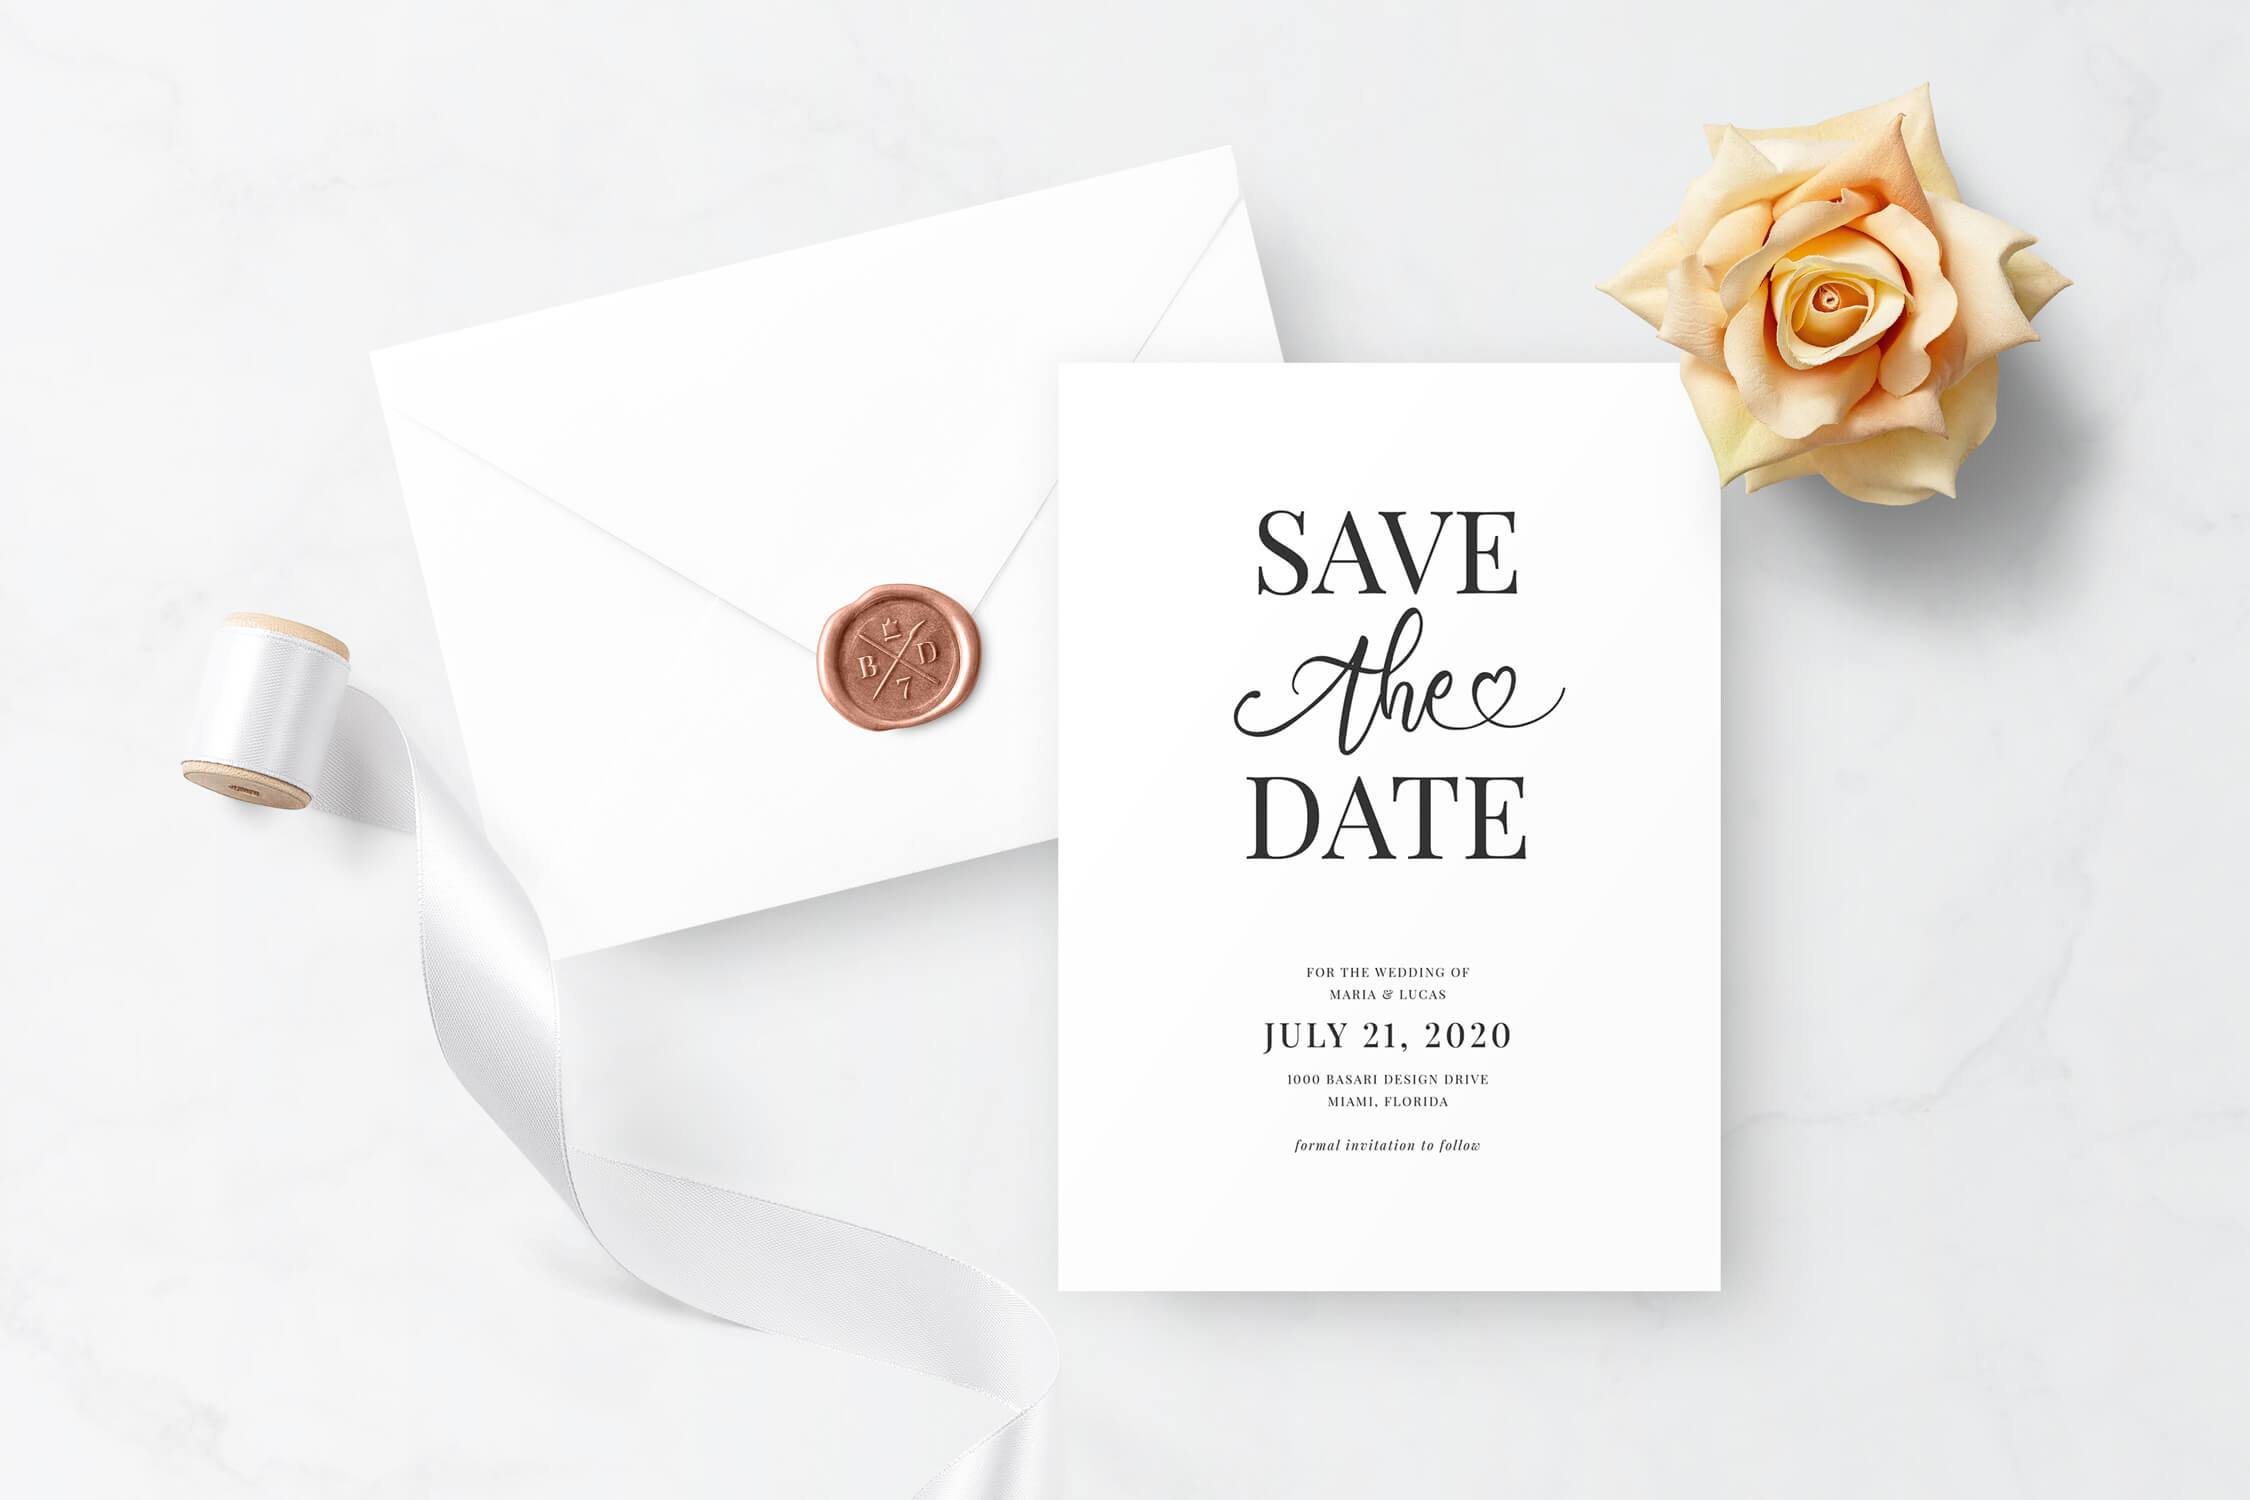 Basari Design - Save the date 003